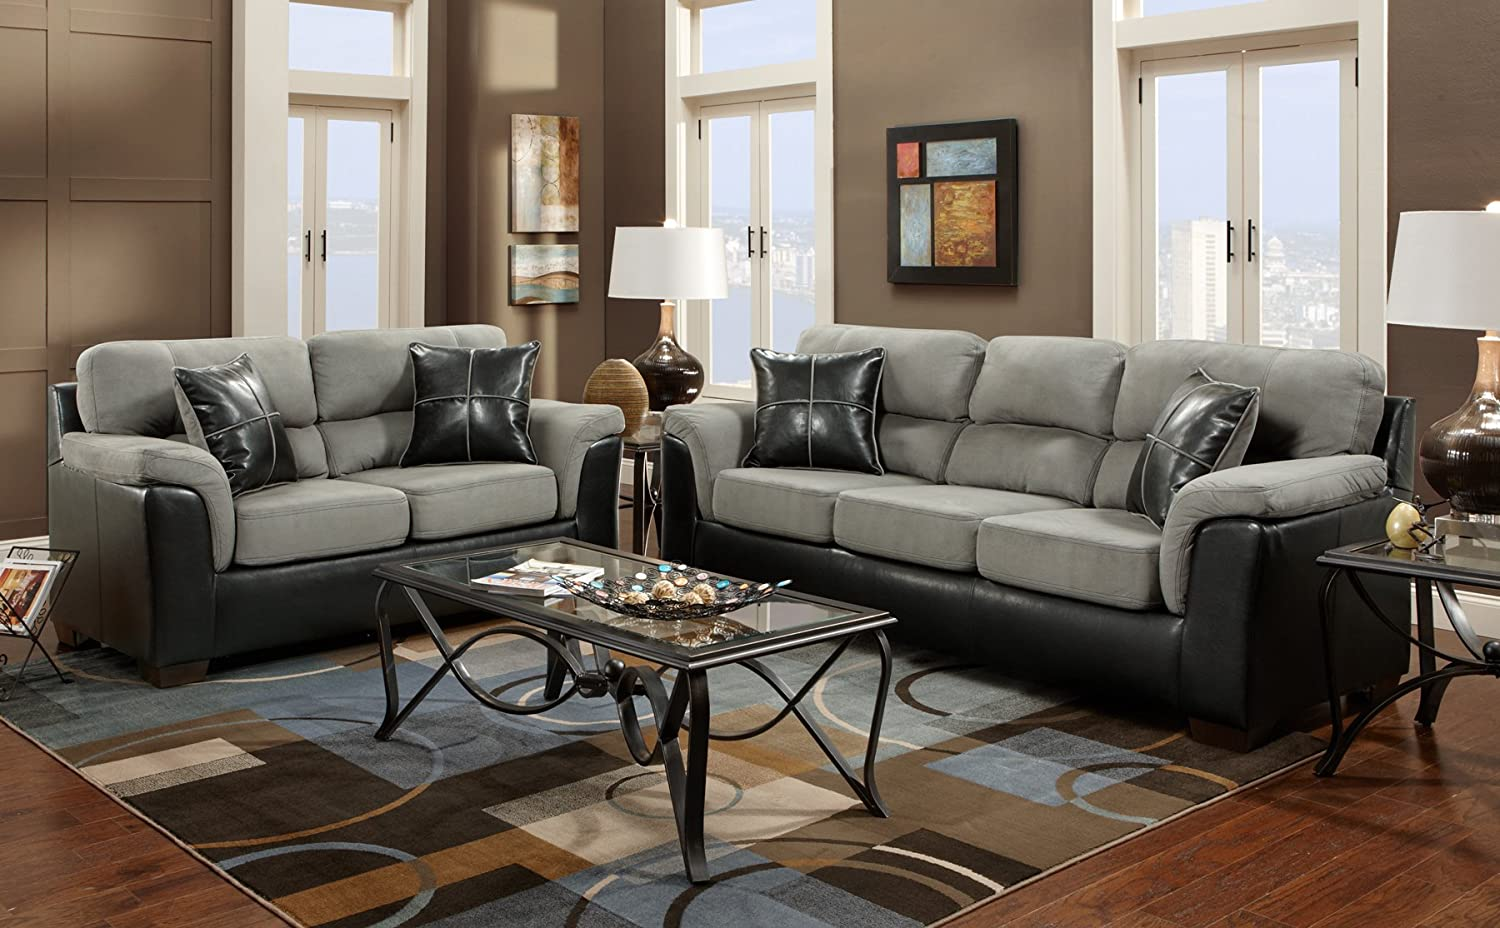 Amazon.com: Roundhill Furniture Laredo 2 Toned Sofa And Loveseat Living  Room Set, Black And Grey: Kitchen U0026 Dining